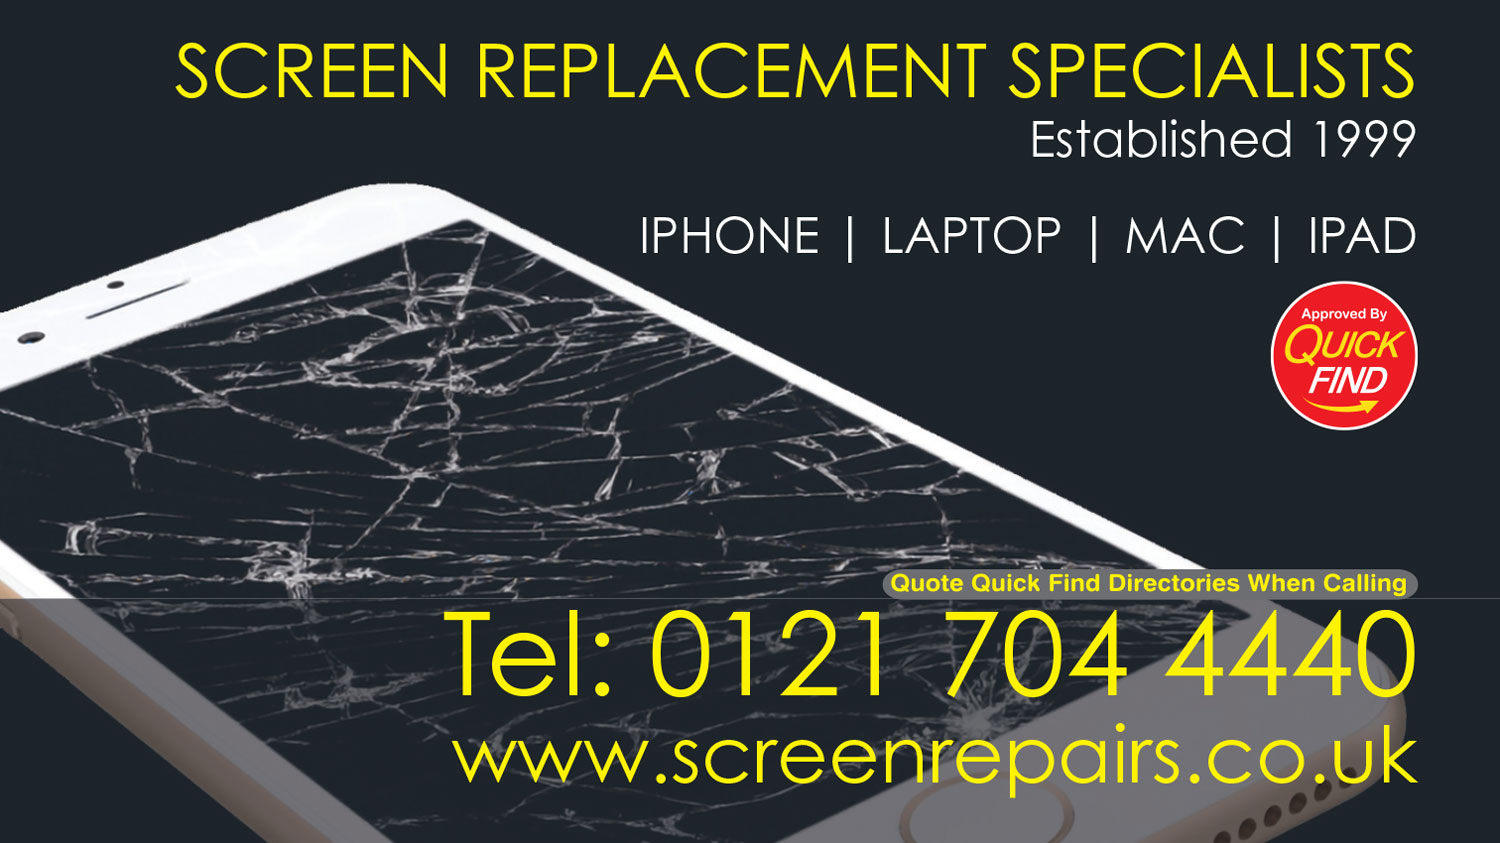 Screen Replacement Specialists